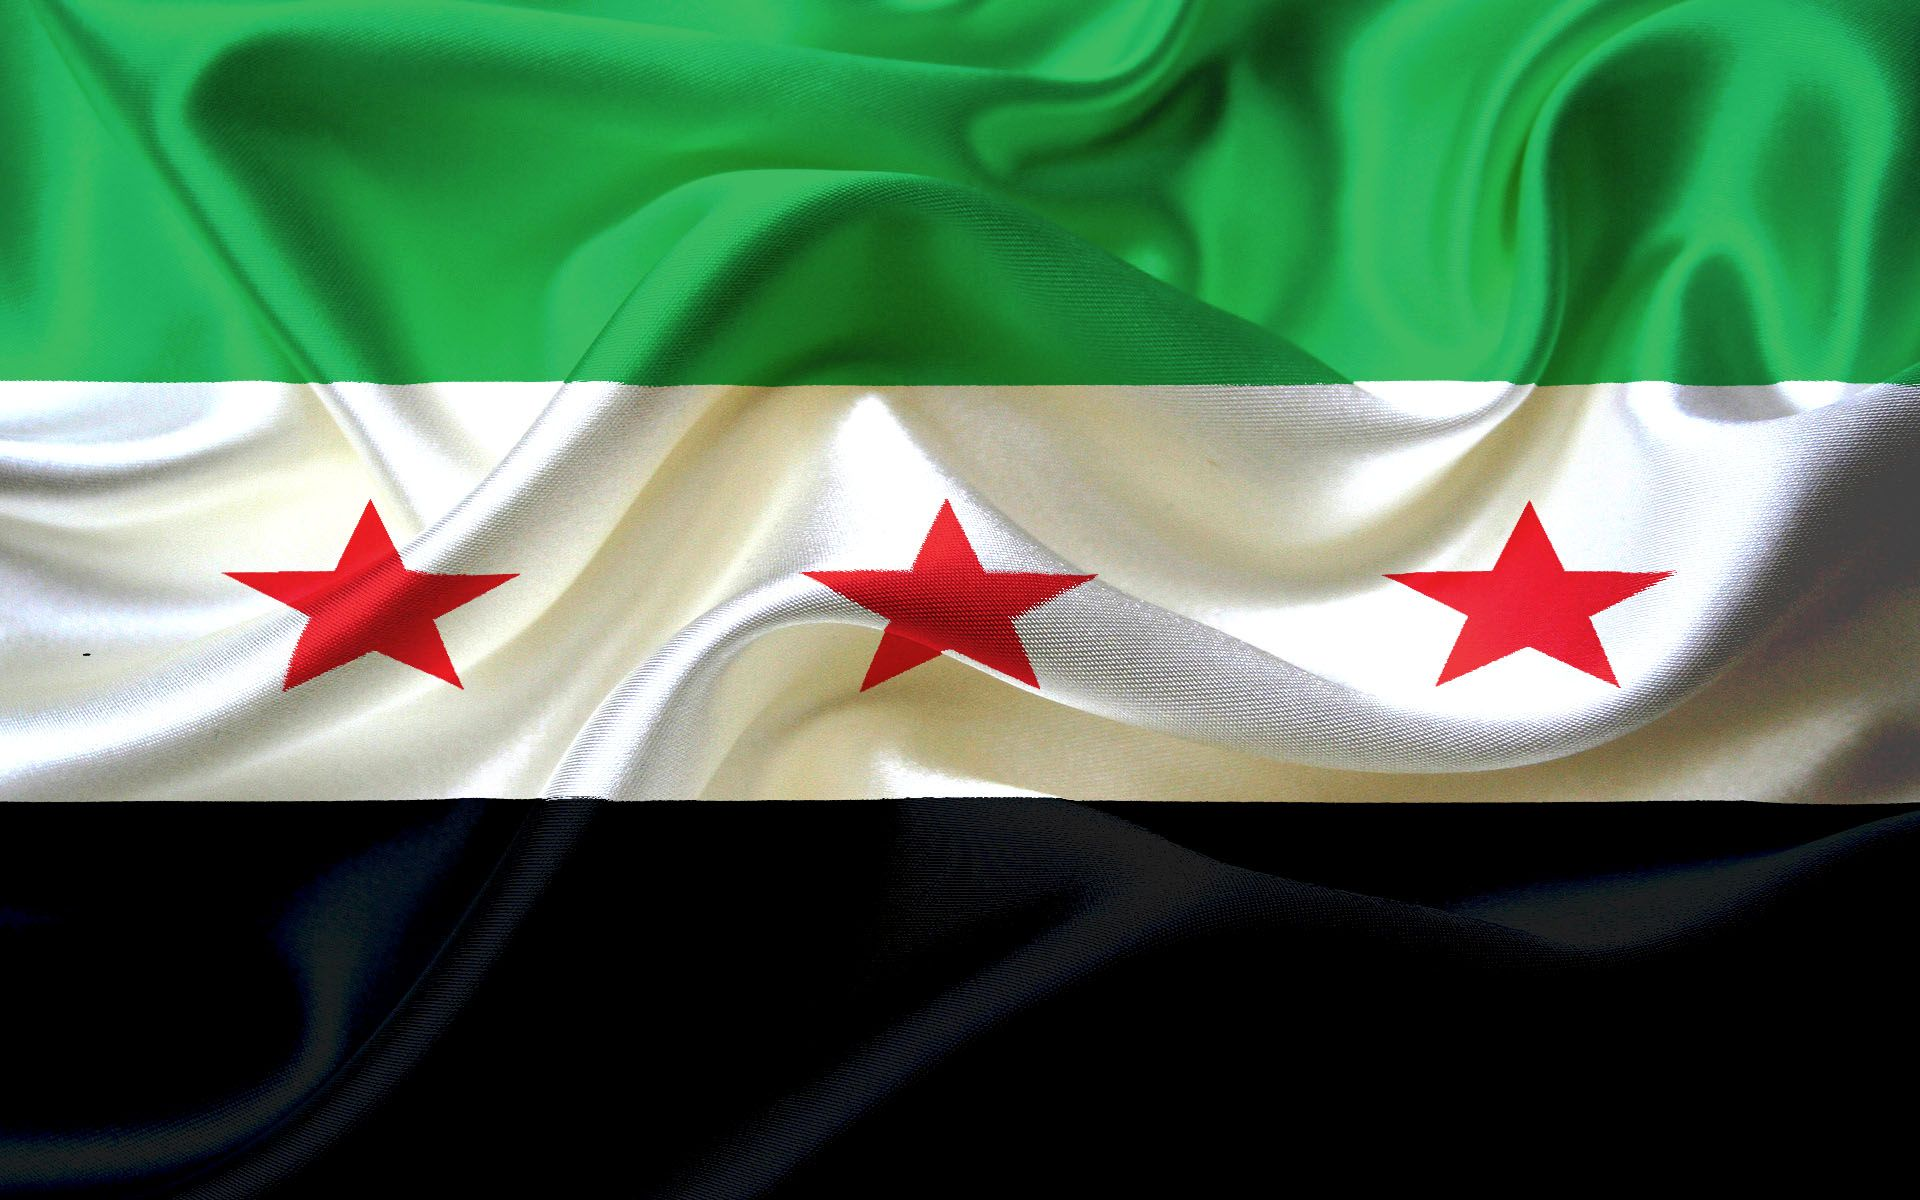 Adorable Syria Images Full HD All Wallpapers Pinterest Syria - Syria flag